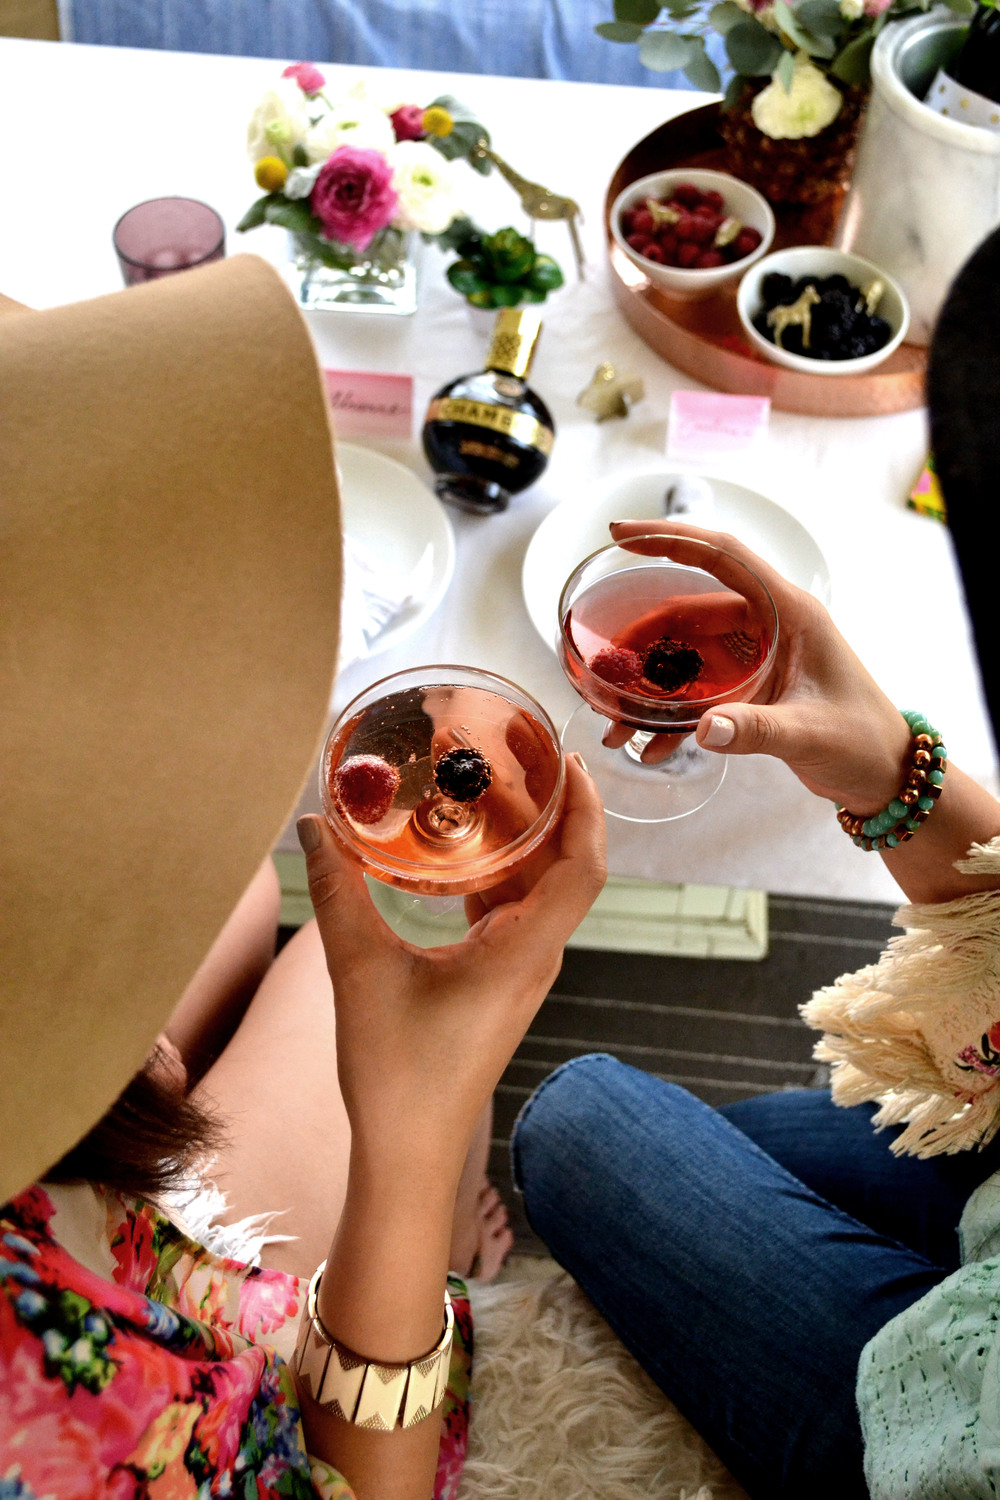 Cheers to springtime, friends and Chambord!